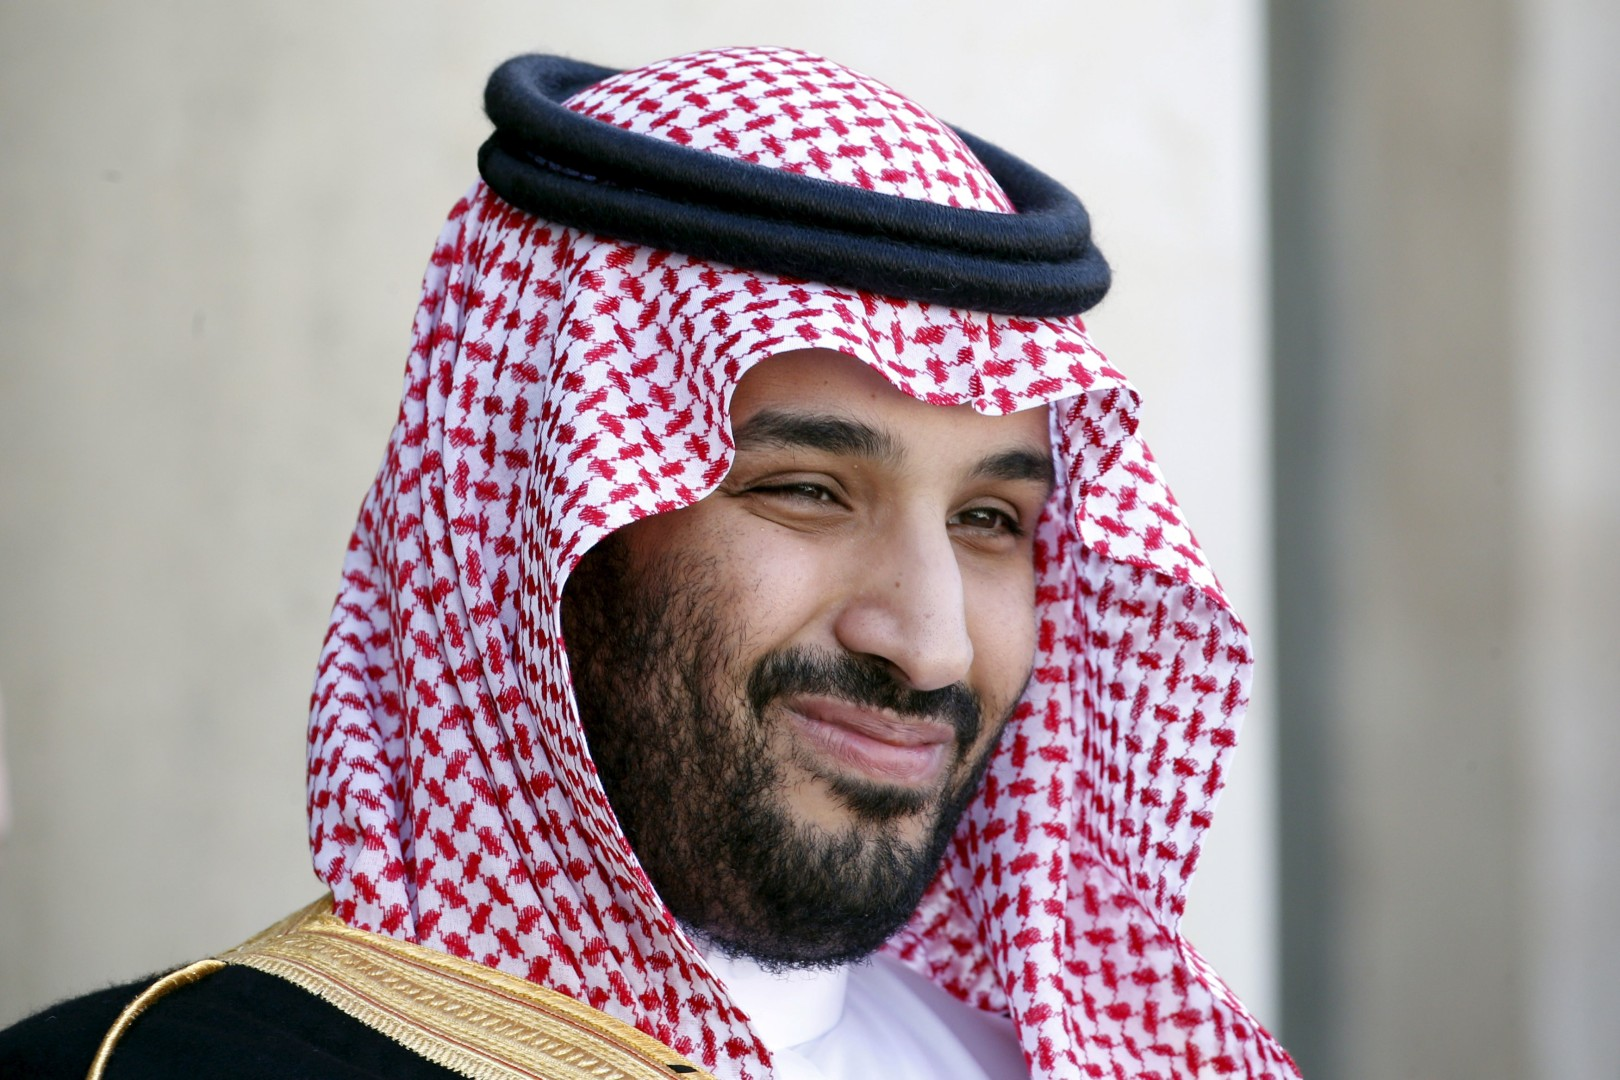 Saudi crown prince's image seen at risk over reported murder